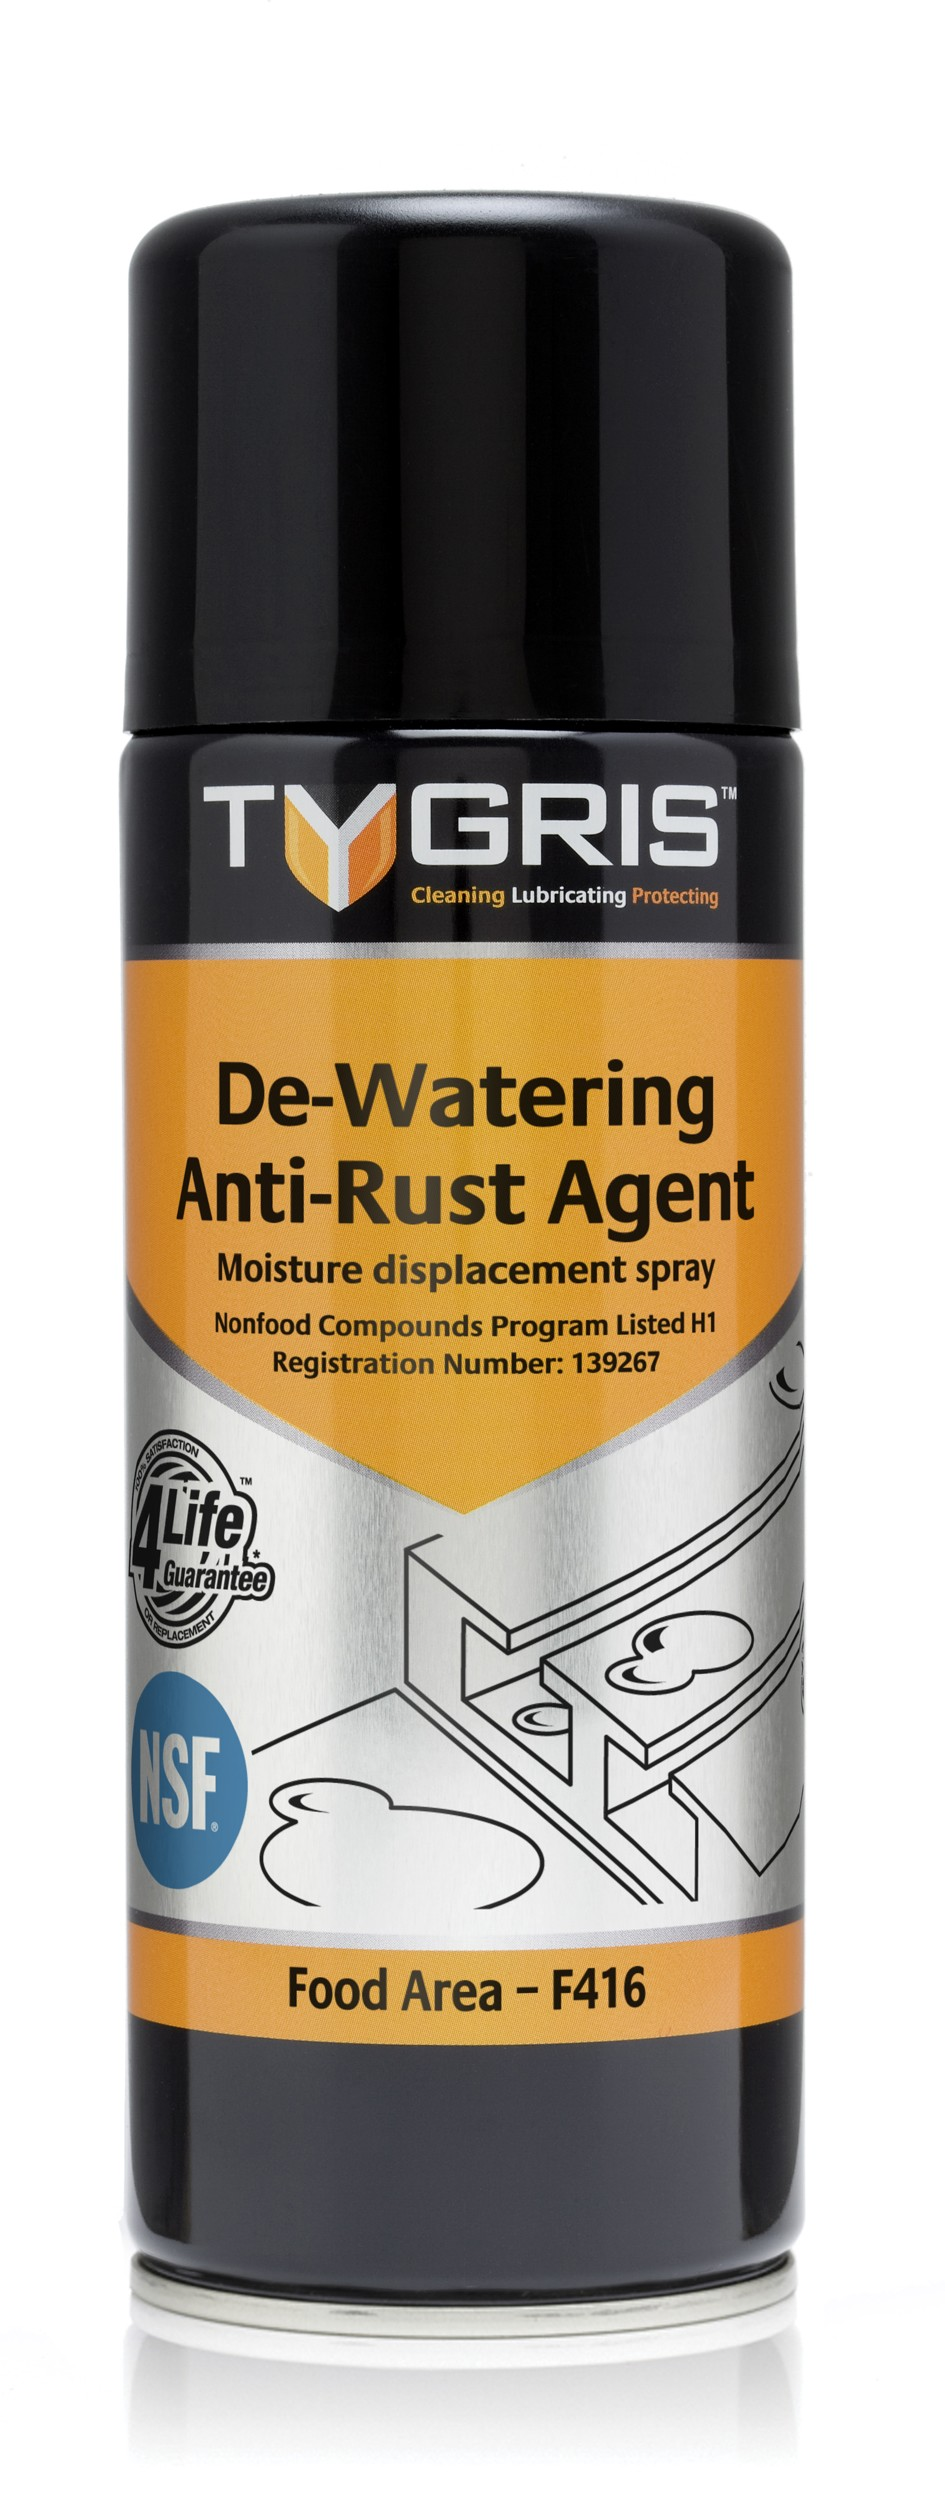 craig international tygris dewatering anti rust agent moisture displacement spray 300ml. Black Bedroom Furniture Sets. Home Design Ideas